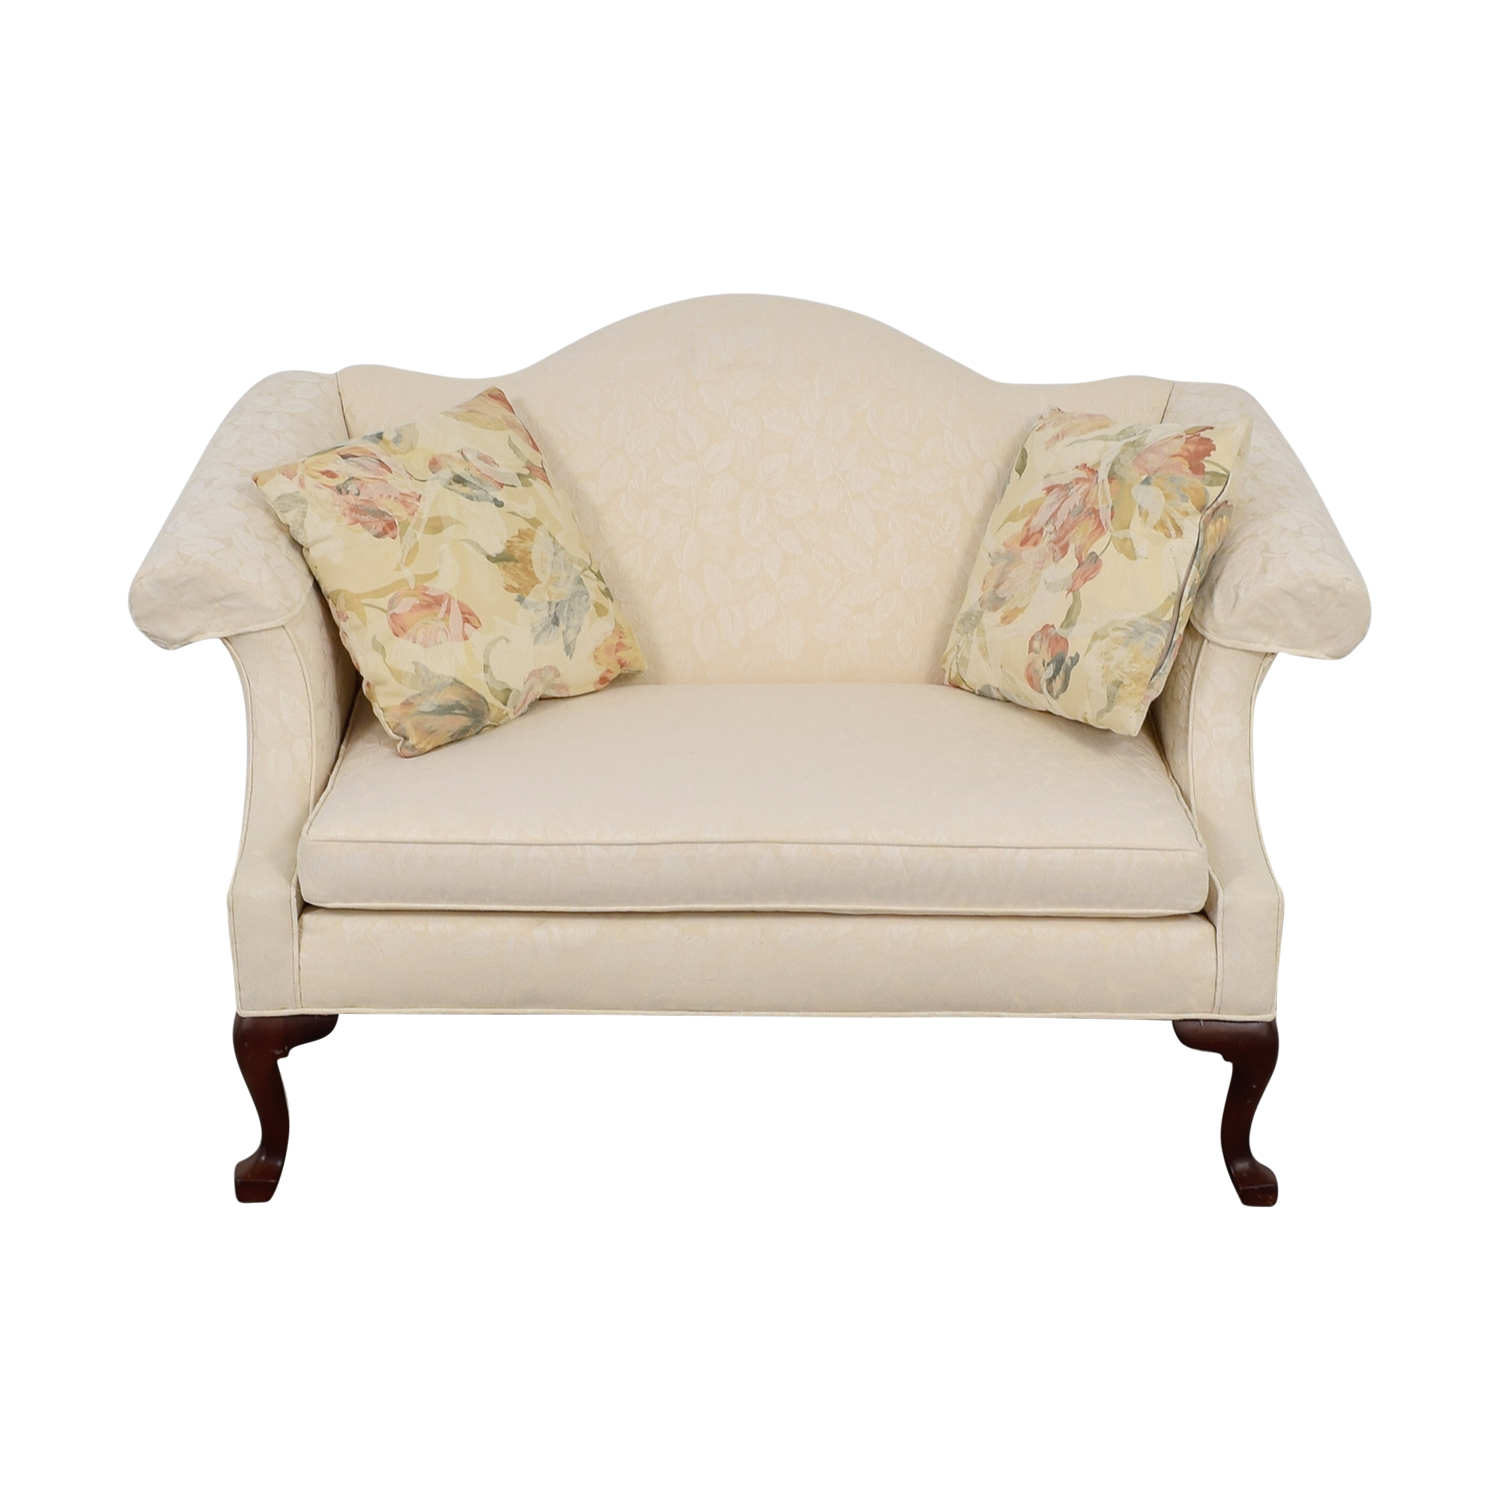 Ethan Allen Ethan Allen White Love Seat with Floral Pillows discount